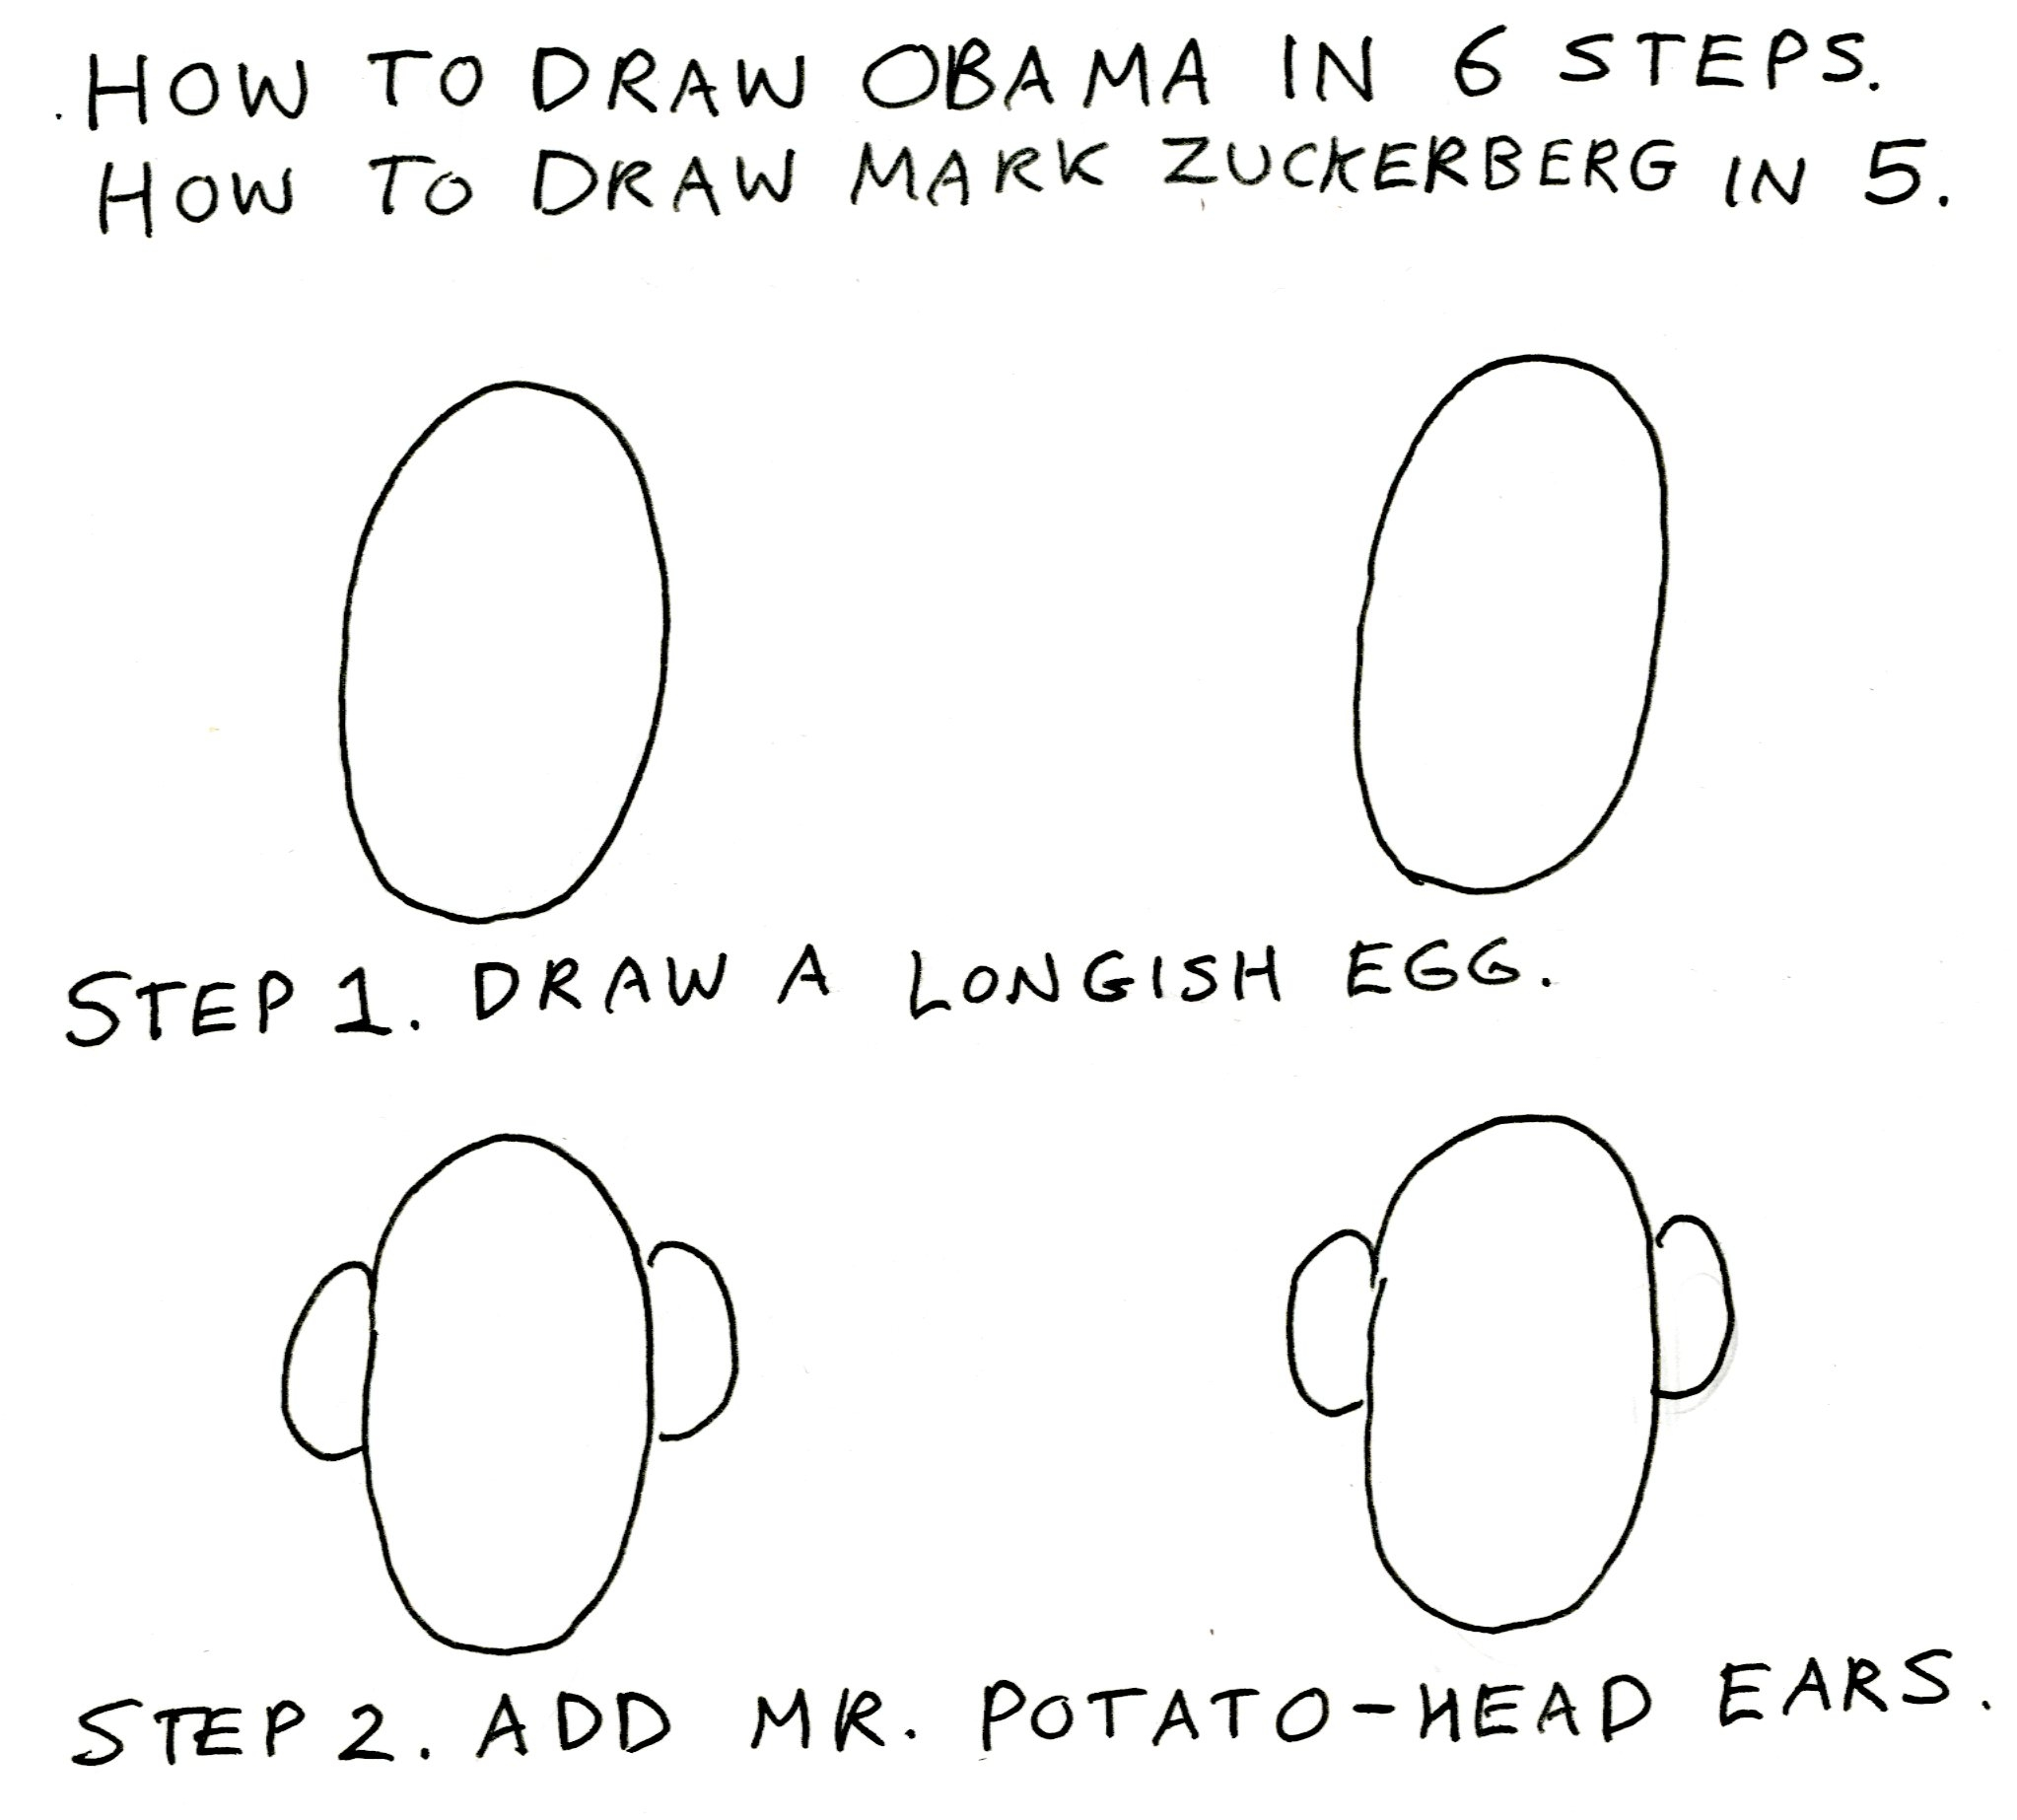 Draw Obama in 6 Easy Steps, Draw Zuckerberg in 5 « Bill ...